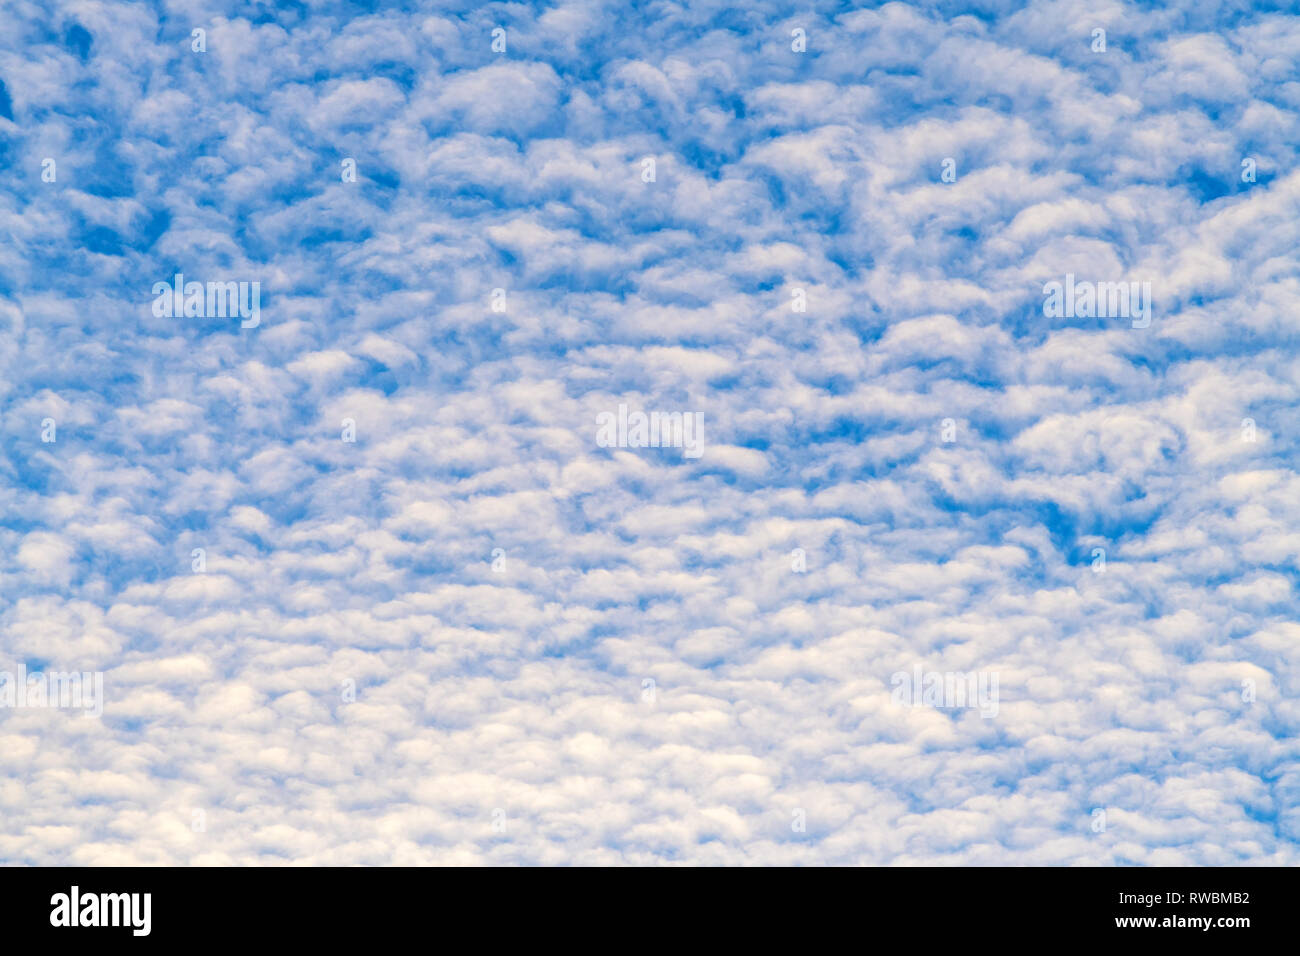 White fluffy clouds on blue sky as background - Stock Image